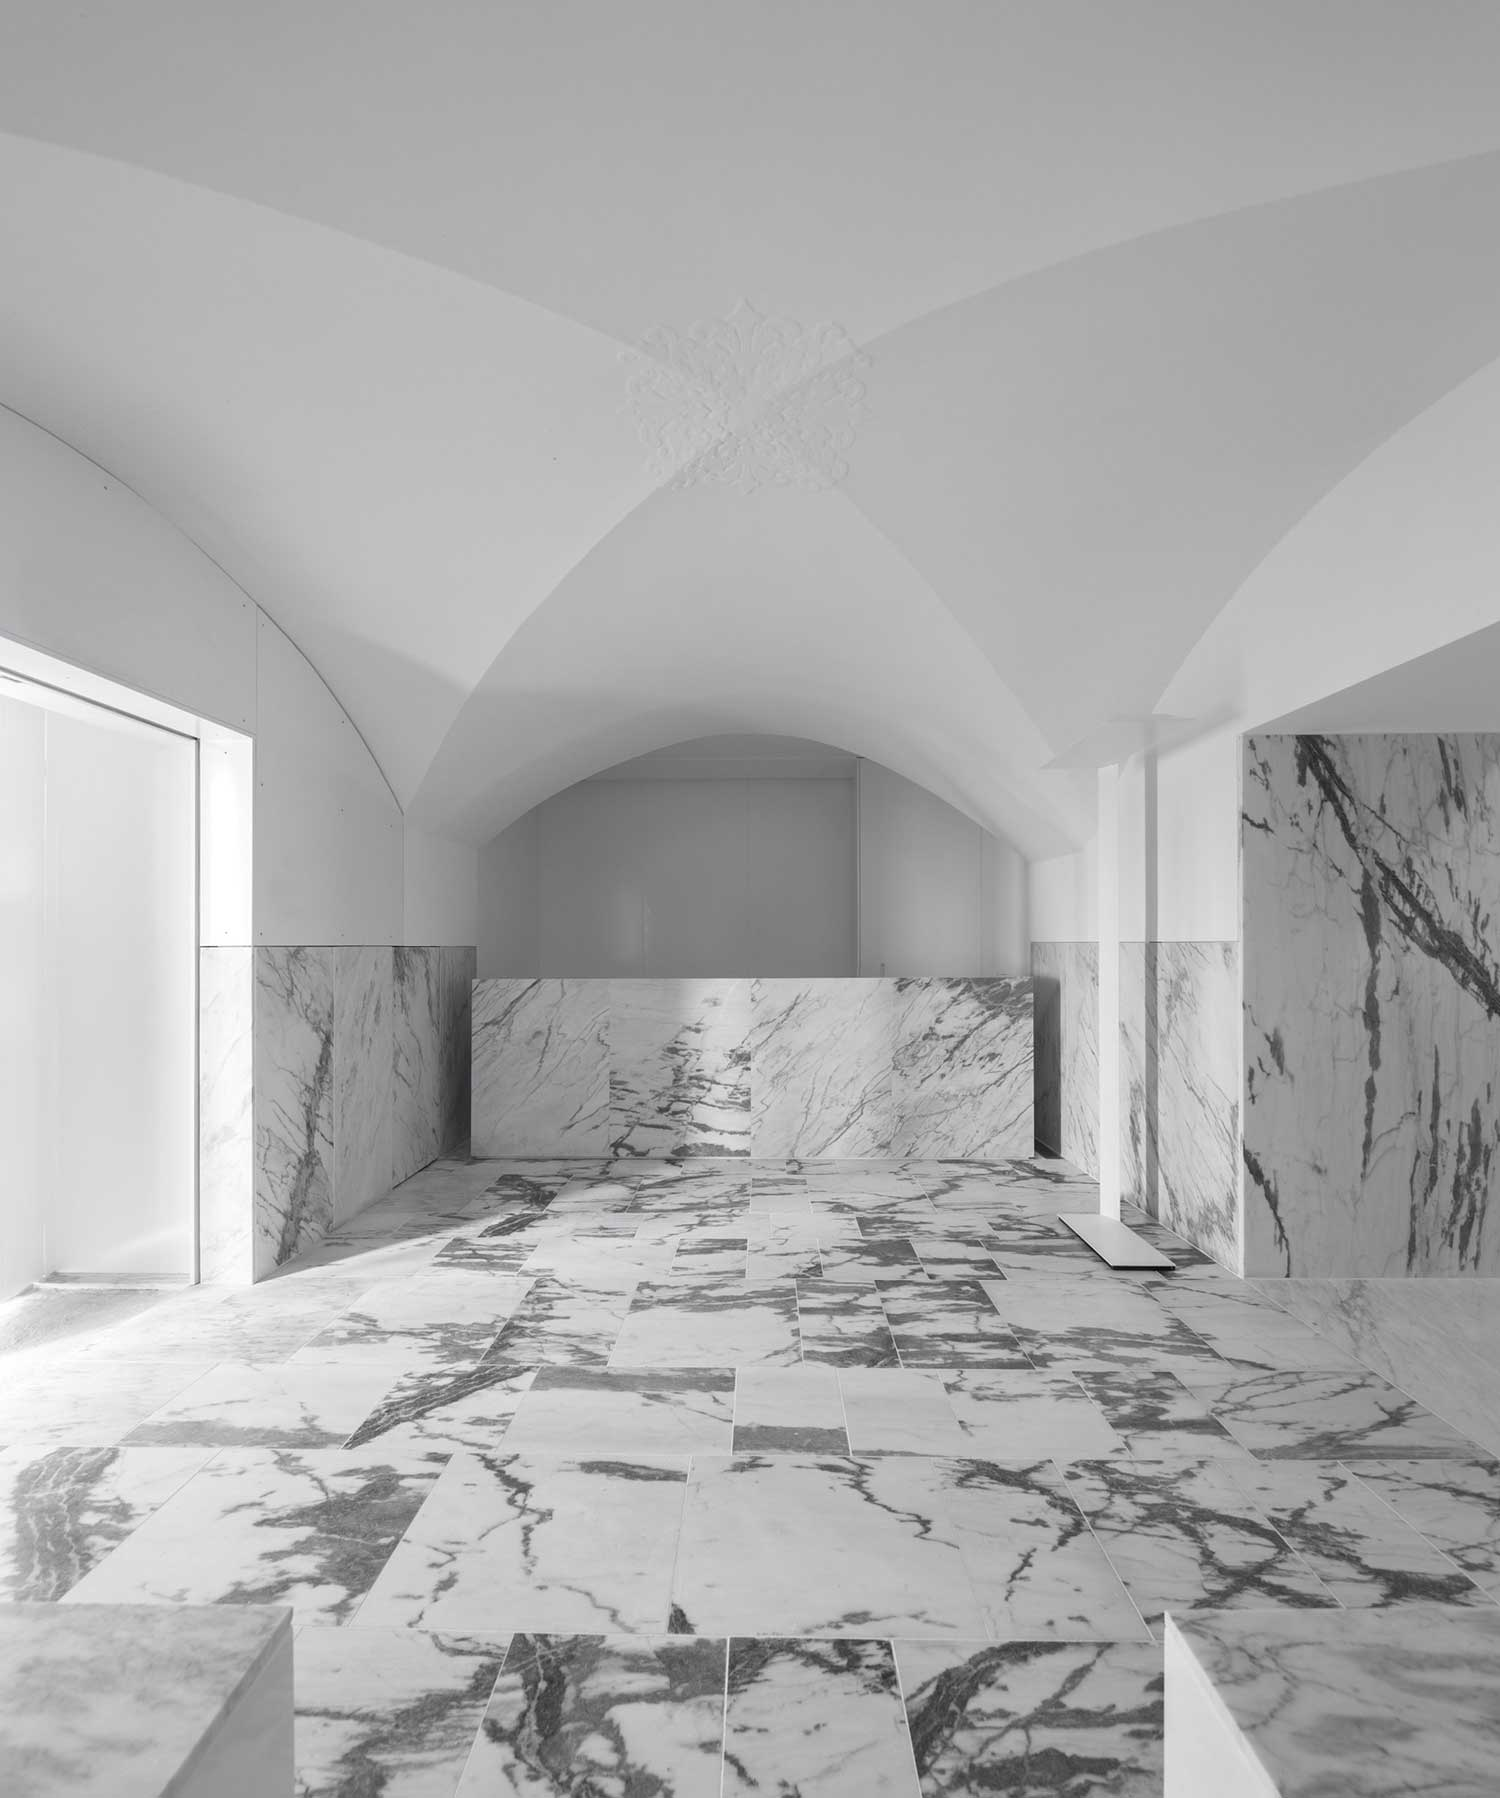 Tapestry-Museum-By-CVDB-Architects-Portugal-Yellowtrace-03